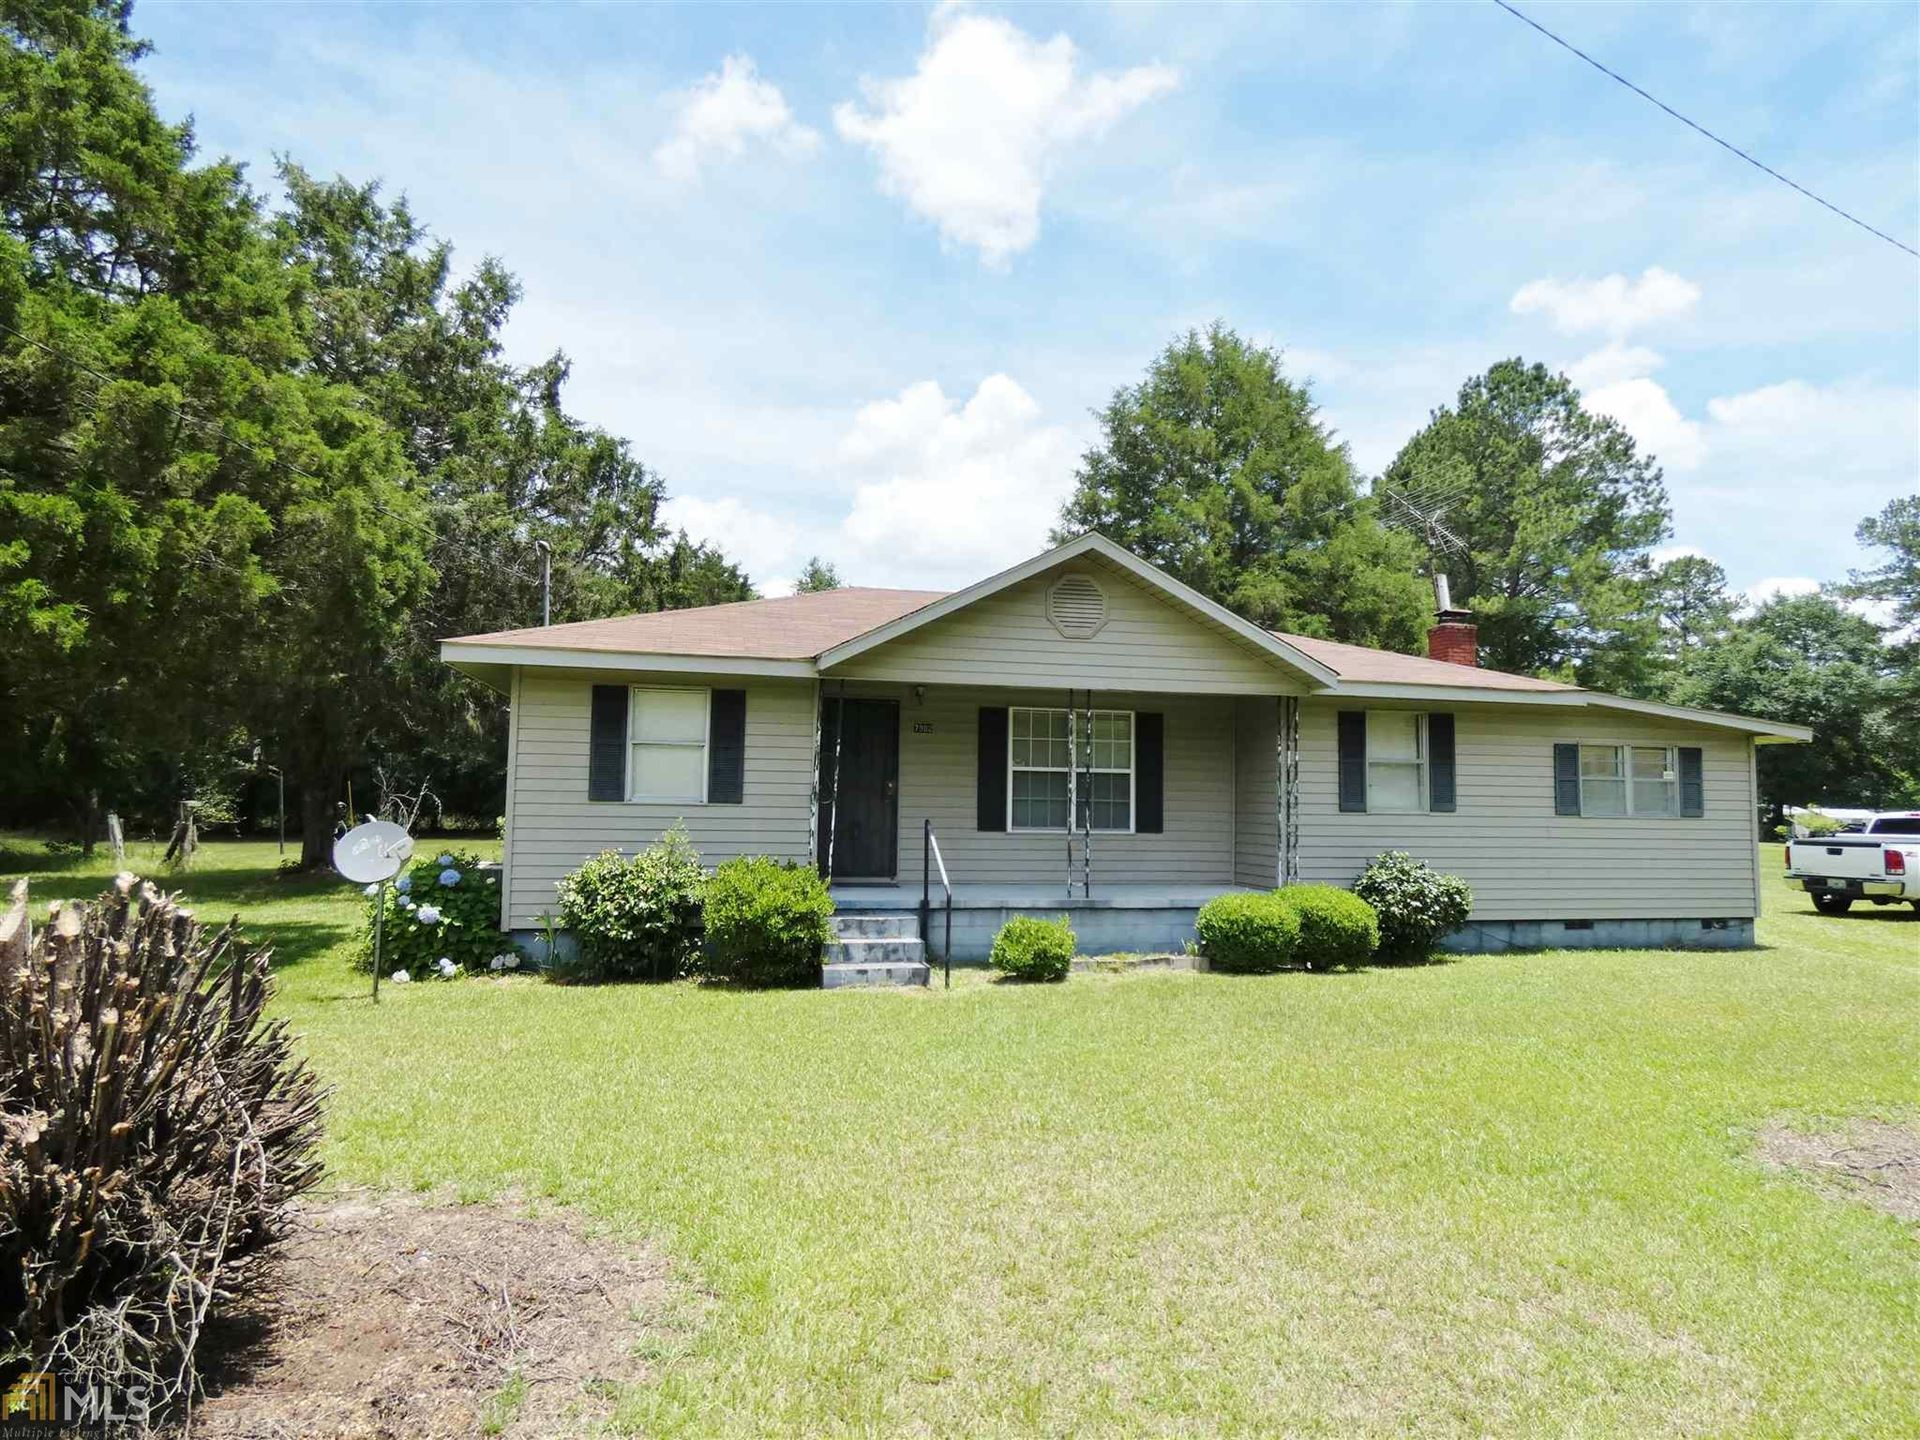 Photo of 7902 Ga Hwy 272, Sandersville, GA 31082 (MLS # 8607477)